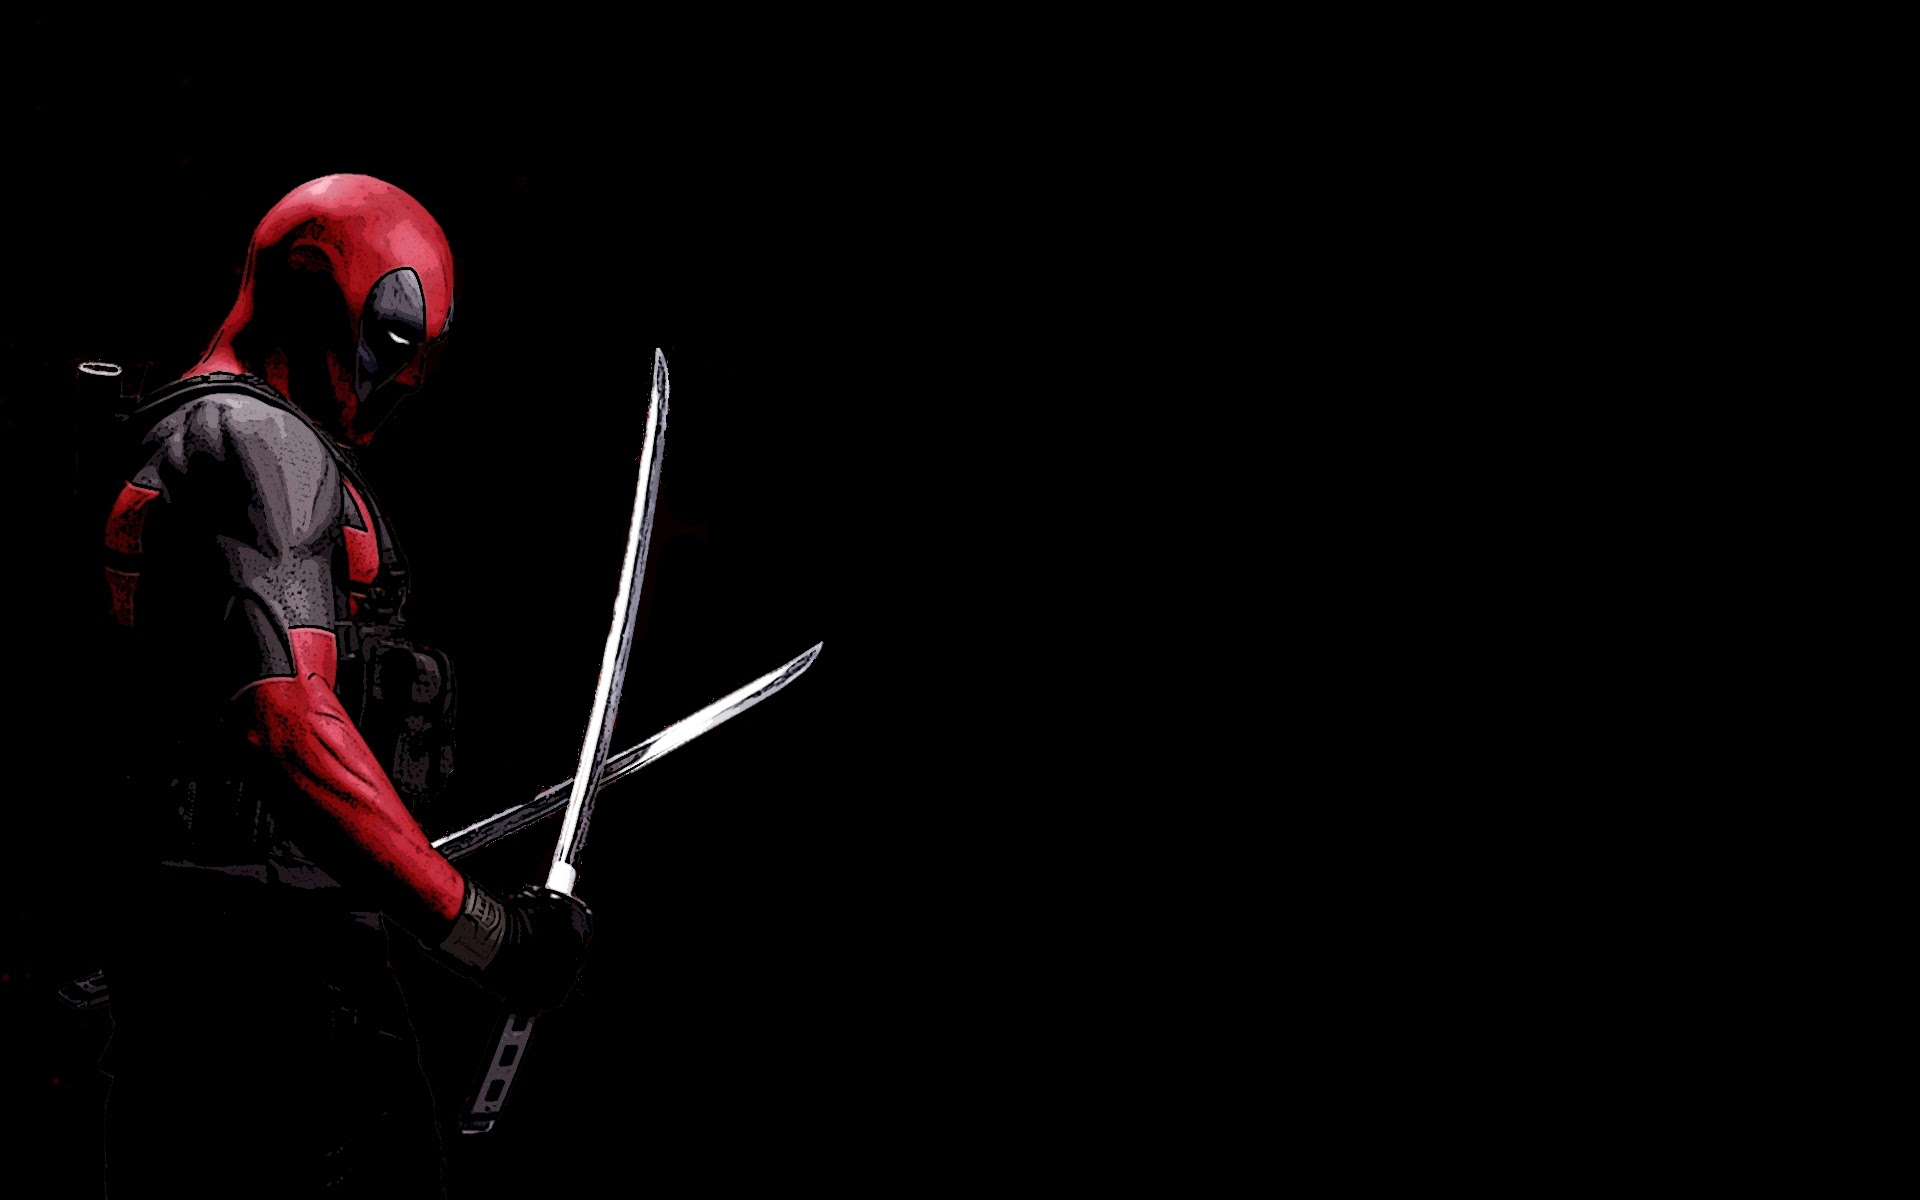 Deadpool Black Background Katana Marvel Comics HD Wallpaper 1920x1200 1920x1200